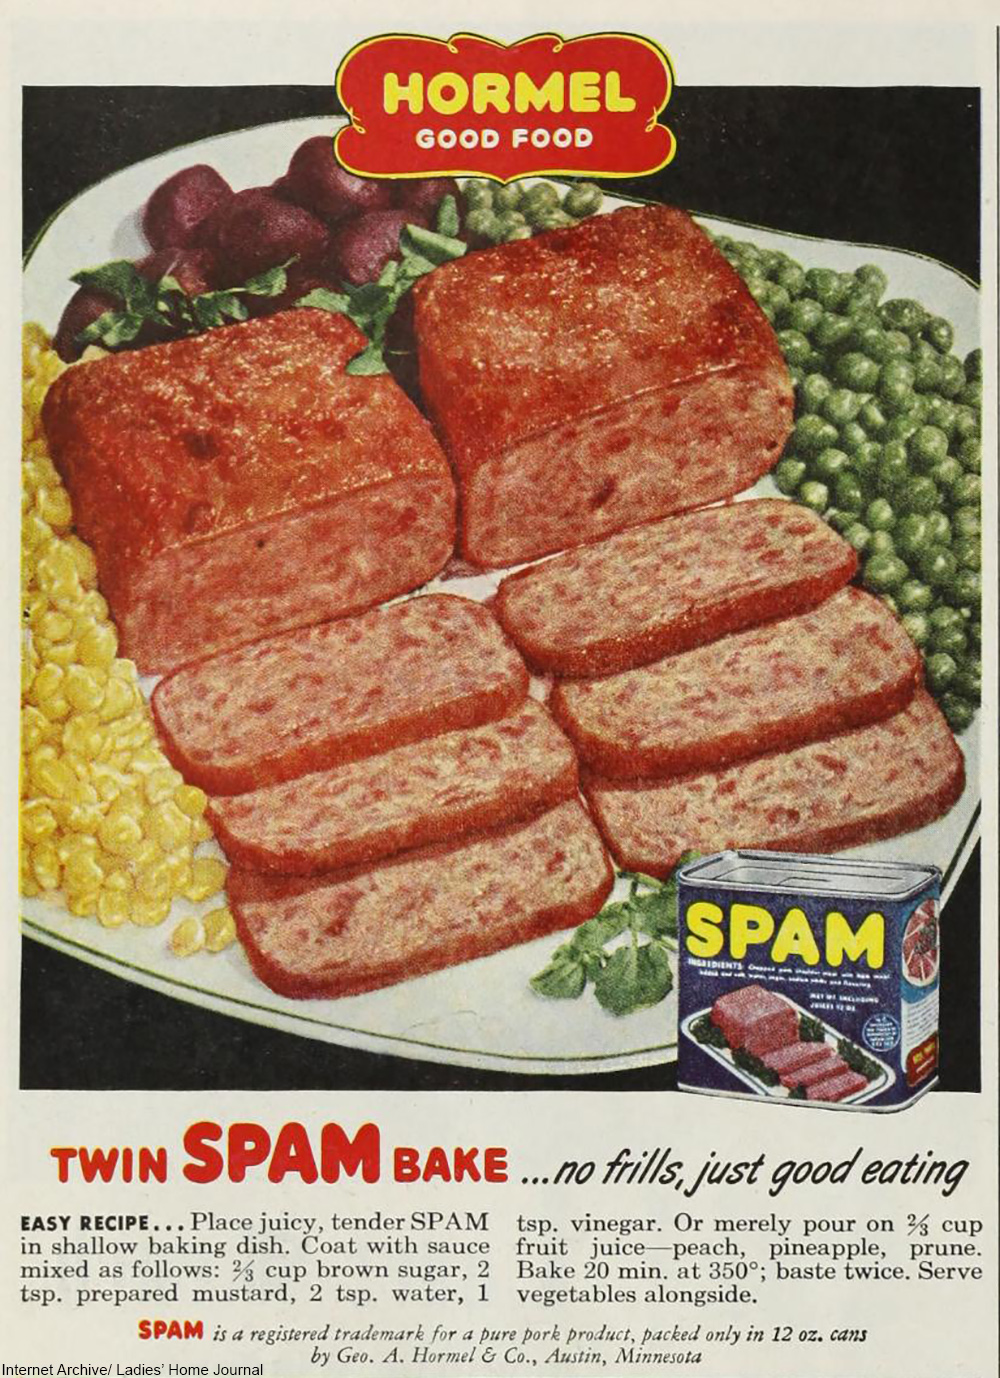 How Spam Became a Household Name Because of WWII